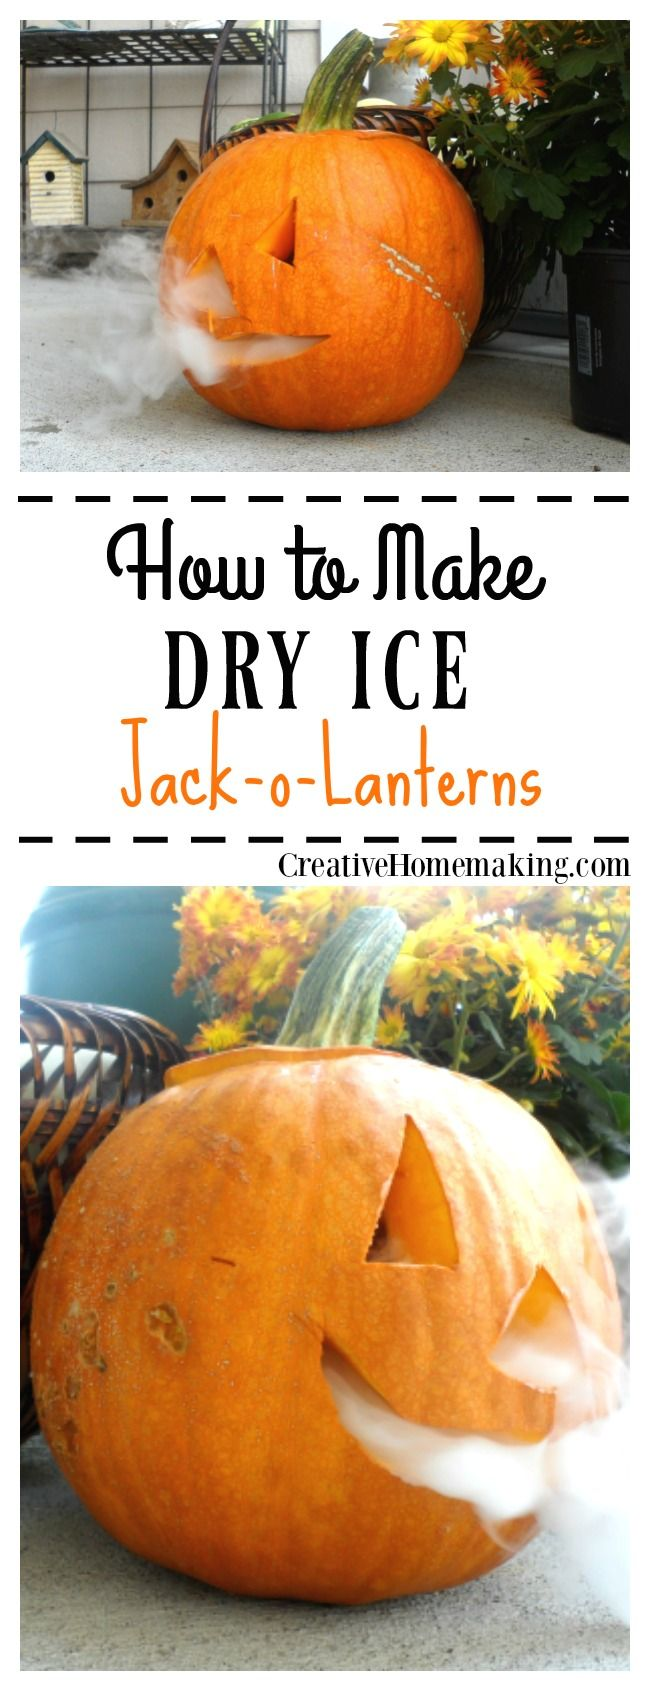 This smoking jack-o-lantern is a fun treat to surprise your trick-or-treaters with for Halloween.